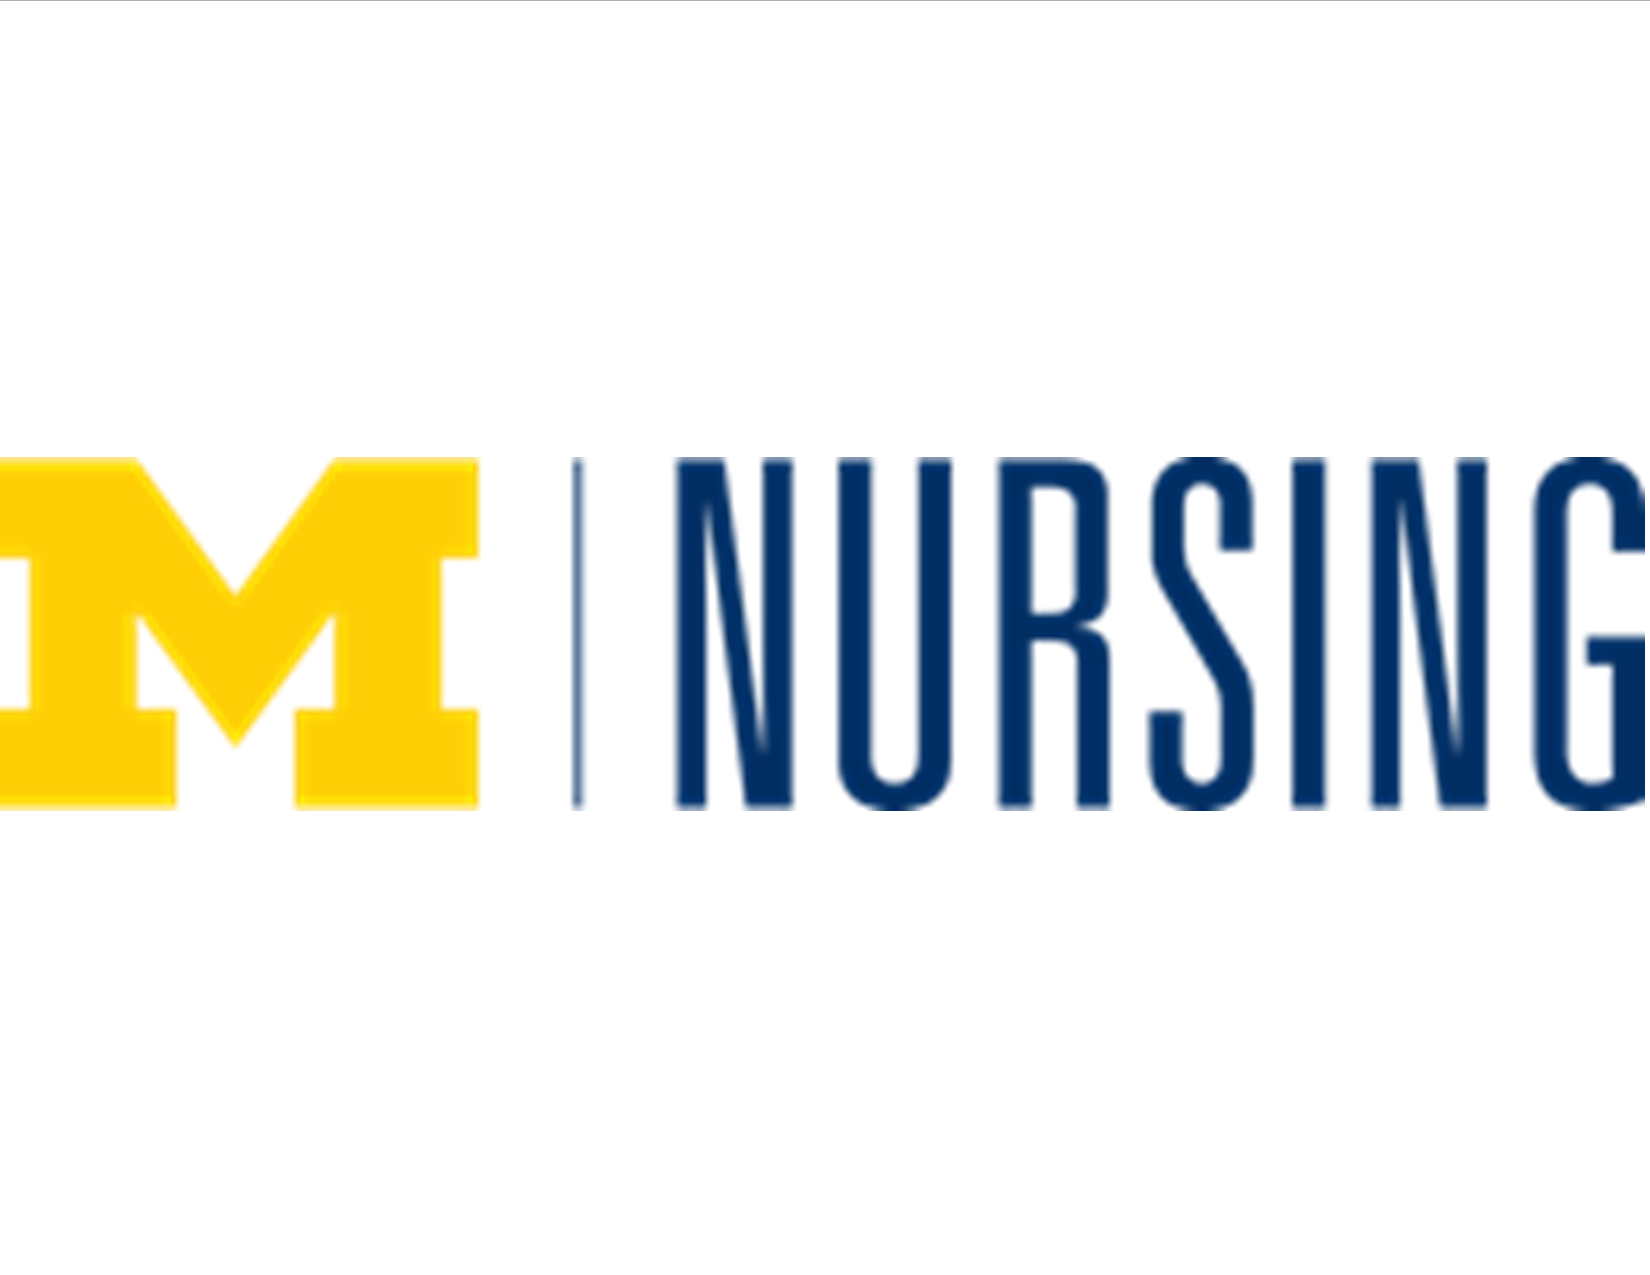 Michigan Block M and Nursing School logo